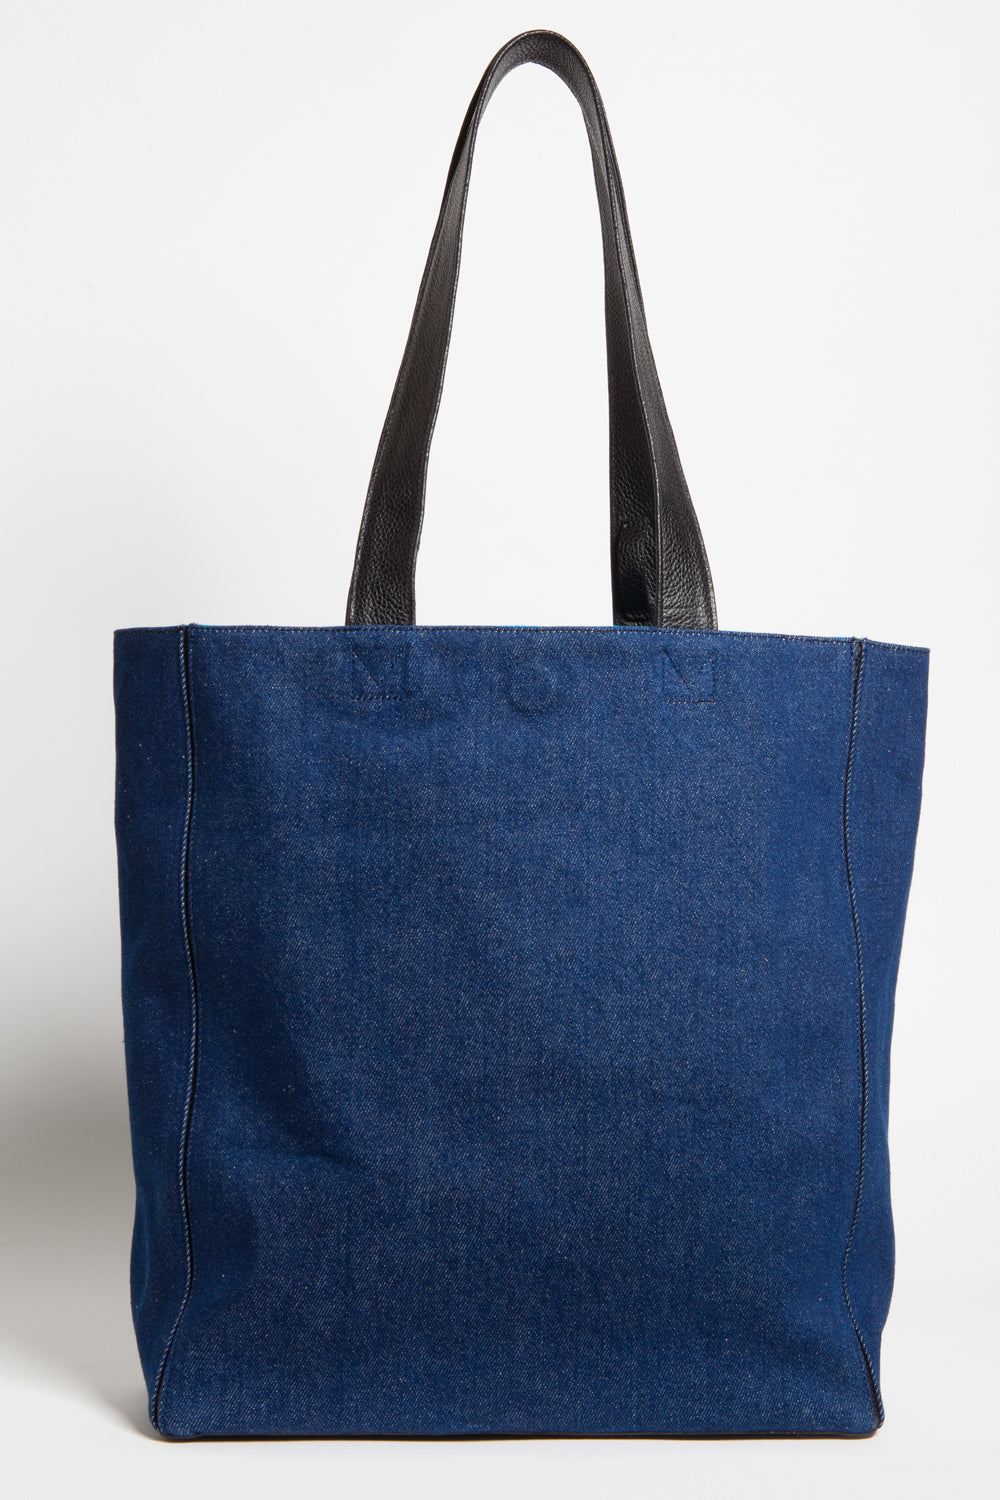 Dark Denim 'Stuart' Carryall Tote | Mel Boteri | Back View